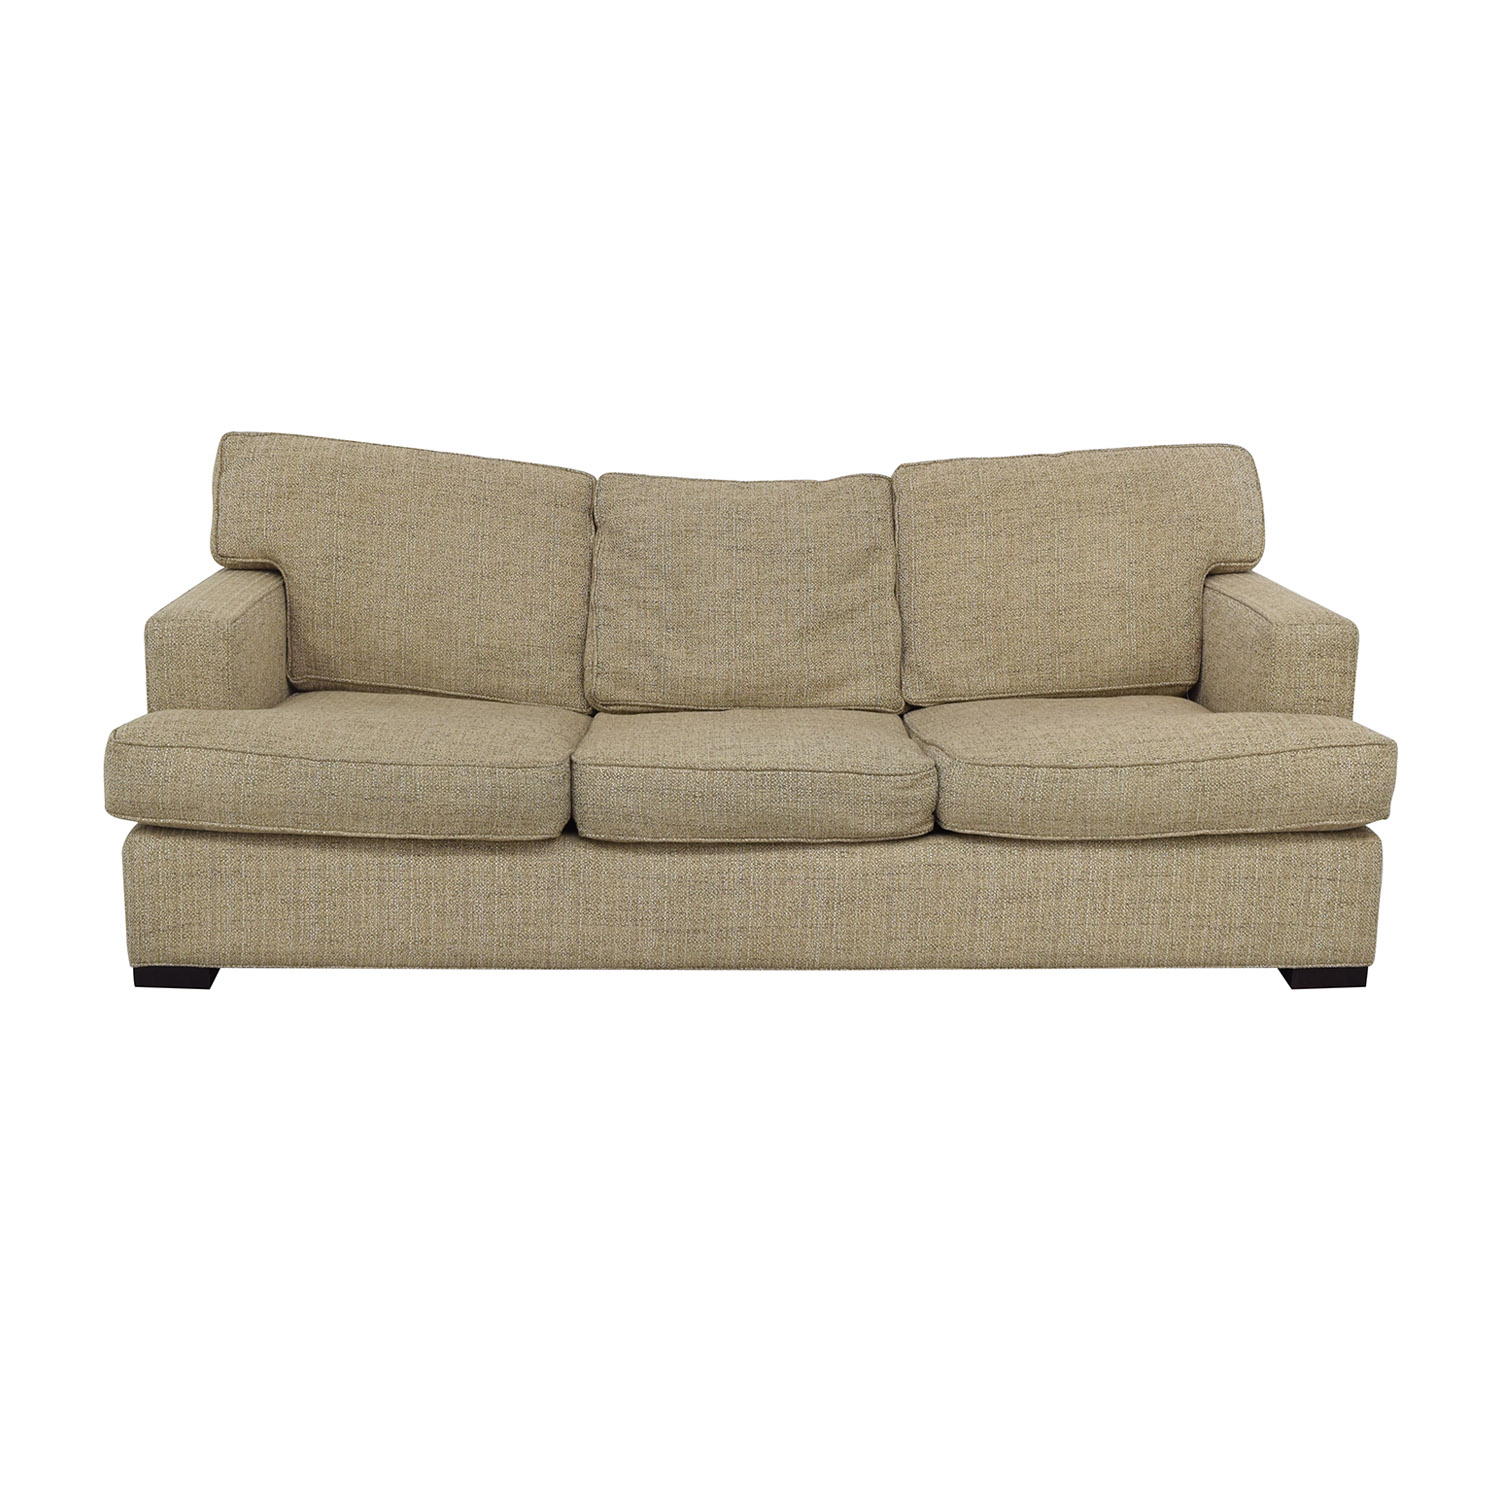 shop Arhaus Dune Three-Cushion Sofa Arhaus